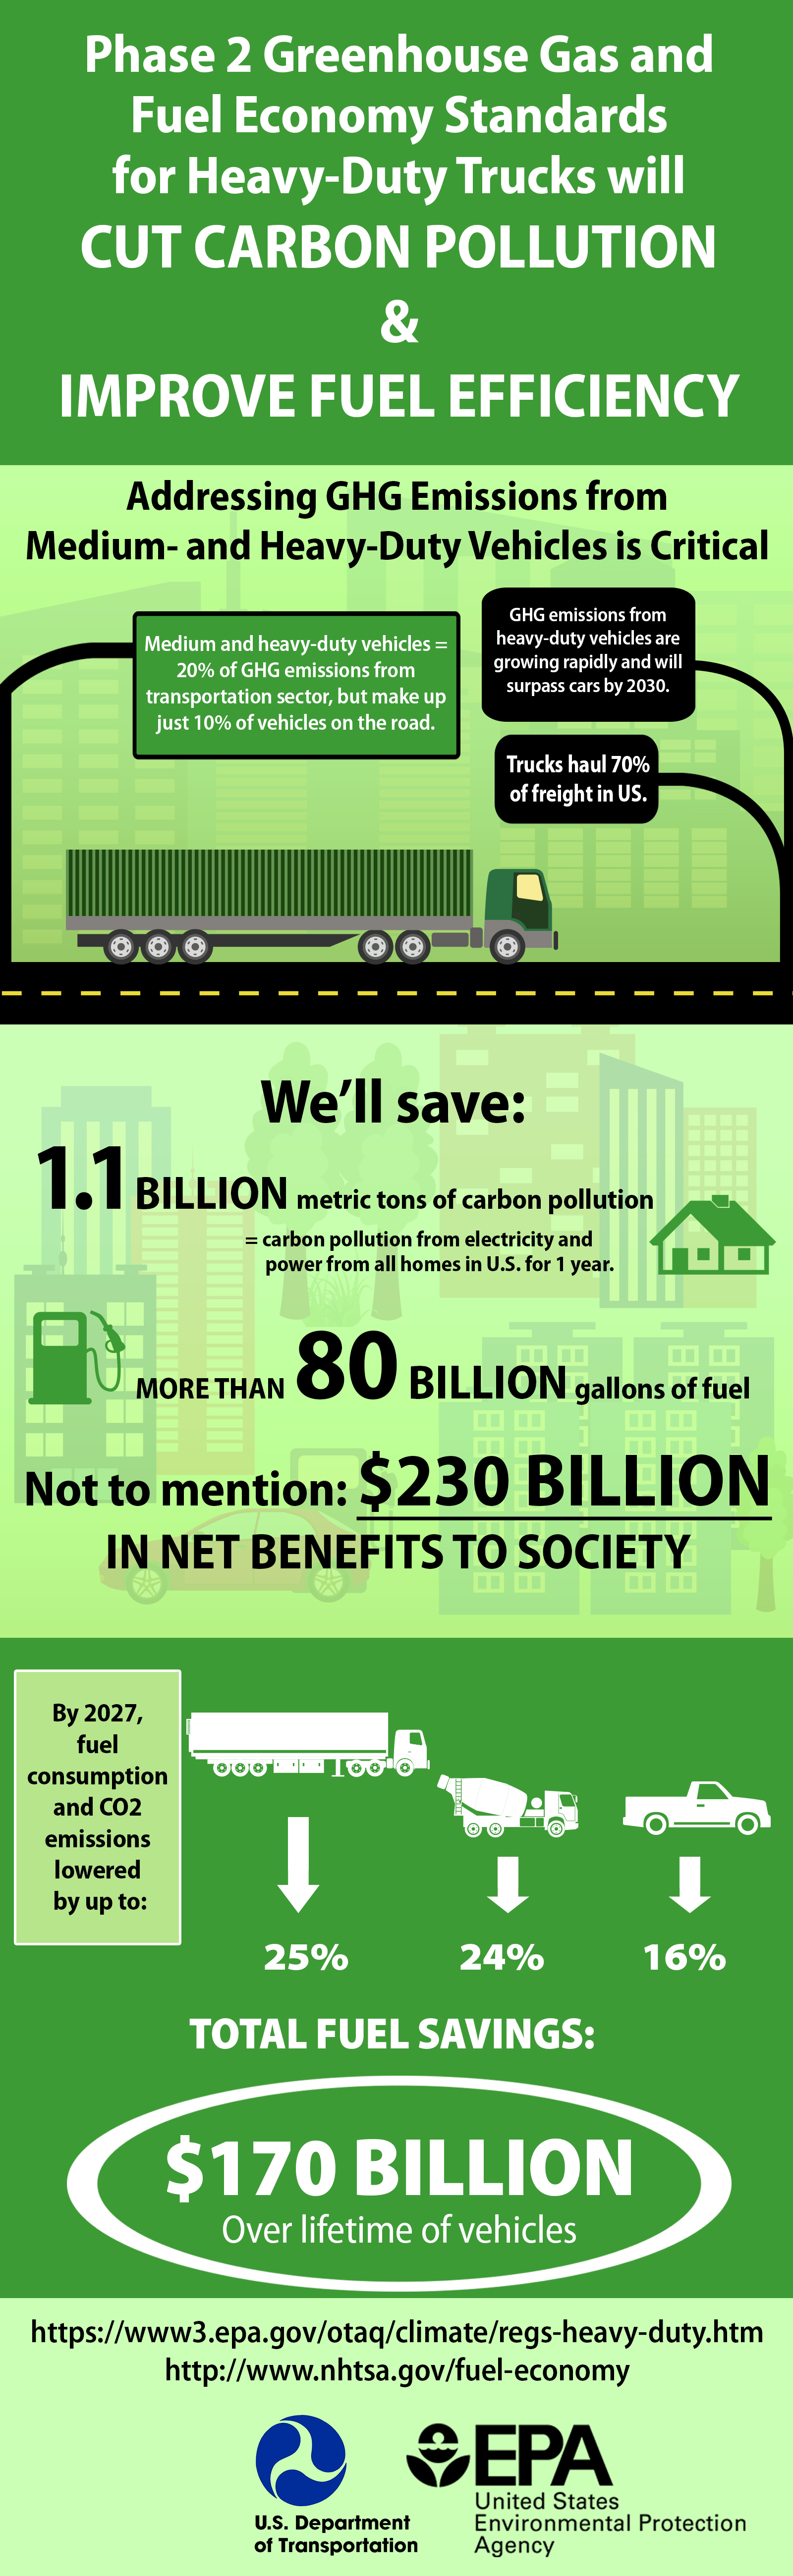 Regulations for greenhouse gas emissions from commercial trucks phase 2 greenhouse gas and fuel economy standards for heavy duty trucks will cut carbon xflitez Image collections